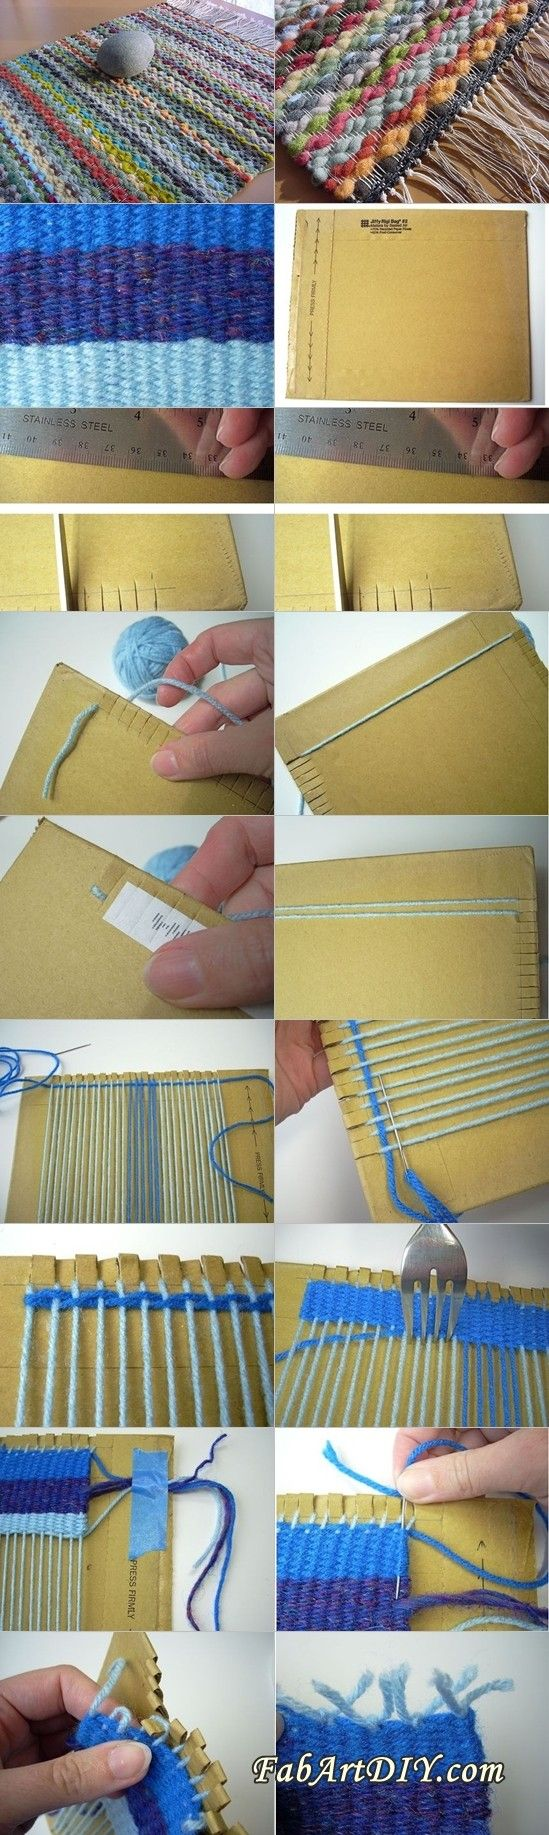 Make your own loom out of cardboard